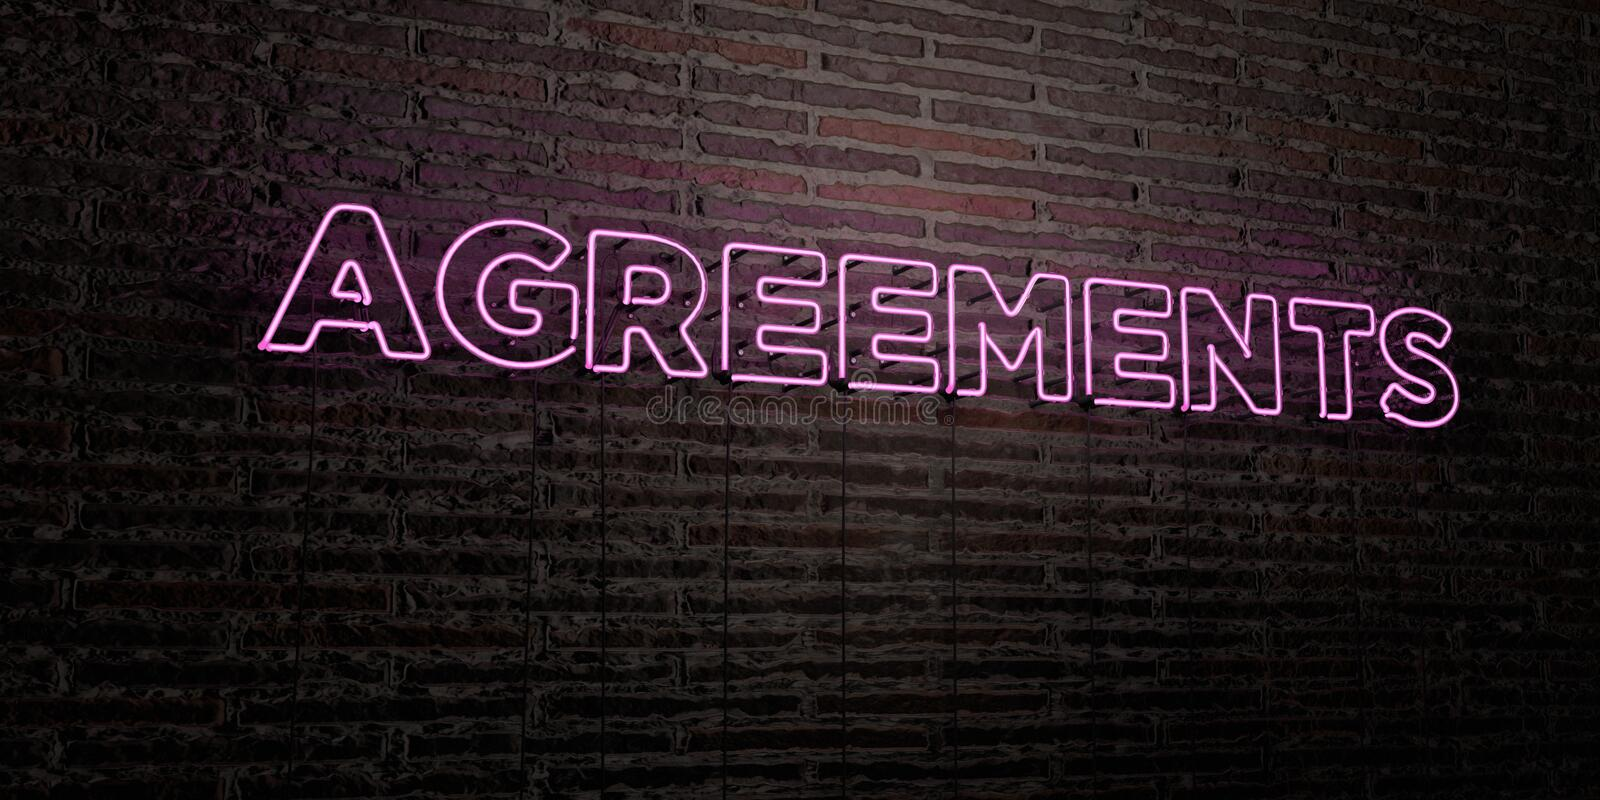 AGREEMENTS -Realistic Neon Sign on Brick Wall background - 3D rendered royalty free stock image. Can be used for online banner ads and direct mailers stock illustration